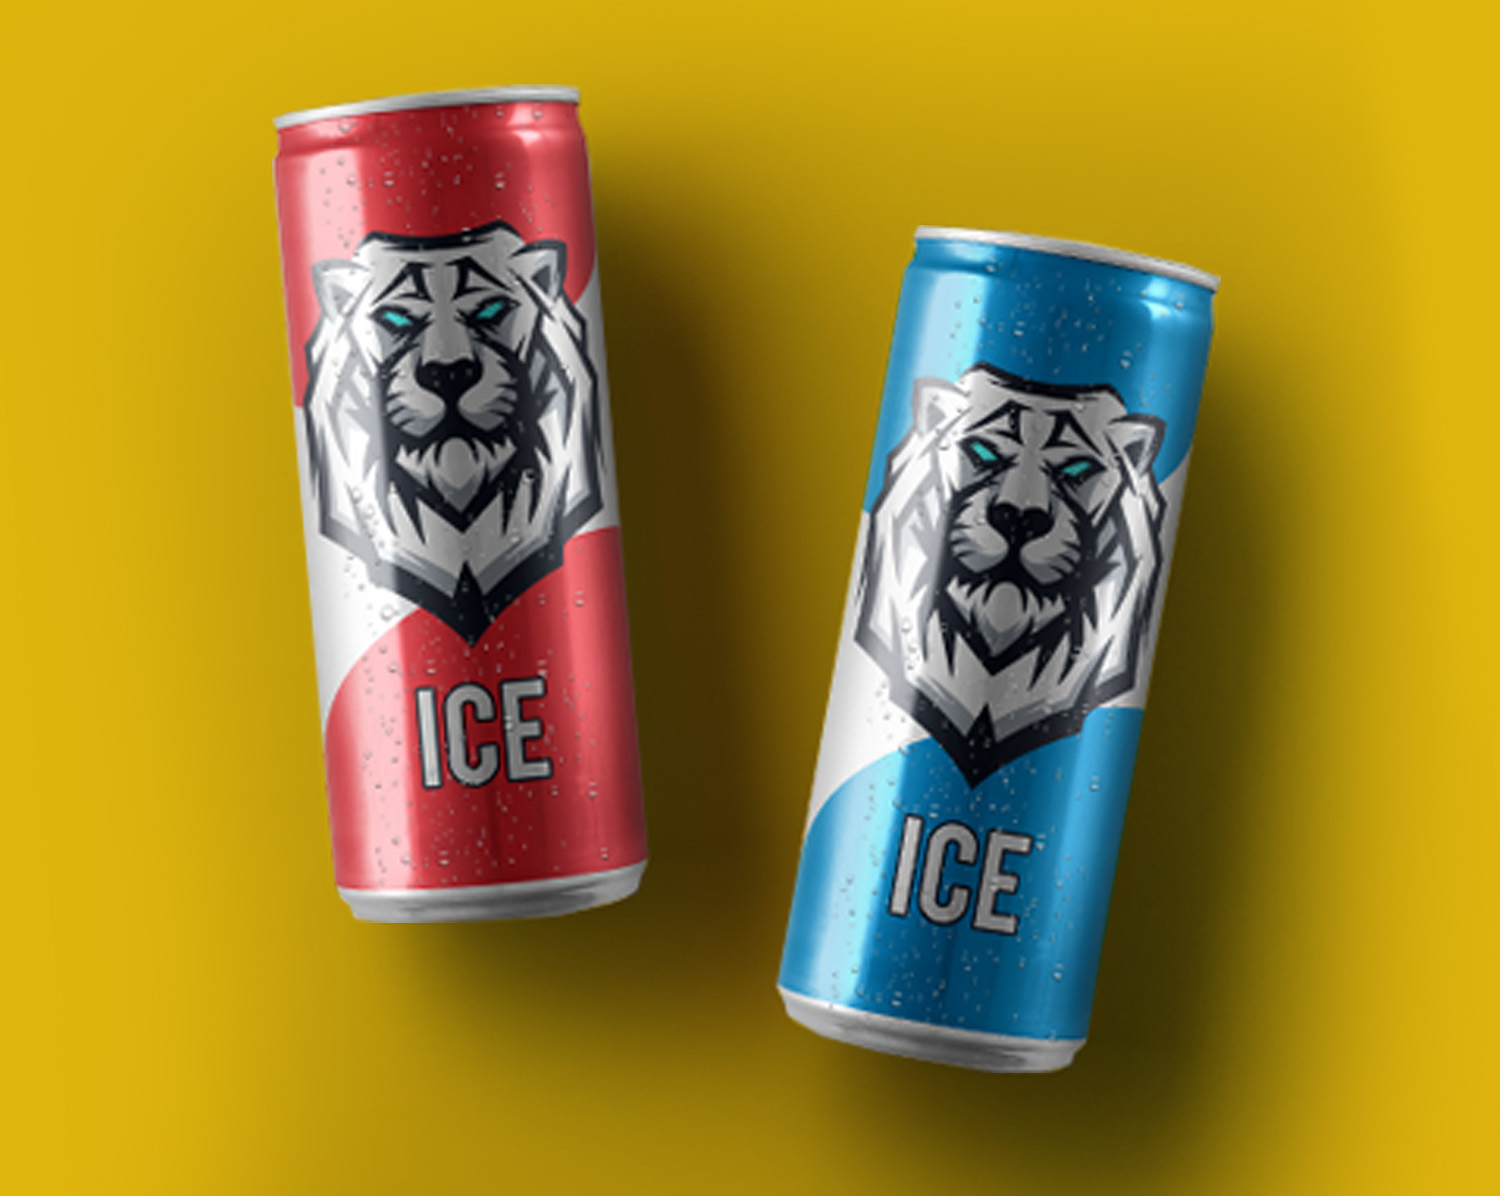 ice-soda-can-logo-label-packaging-design-by-agent-orange-design.jpg